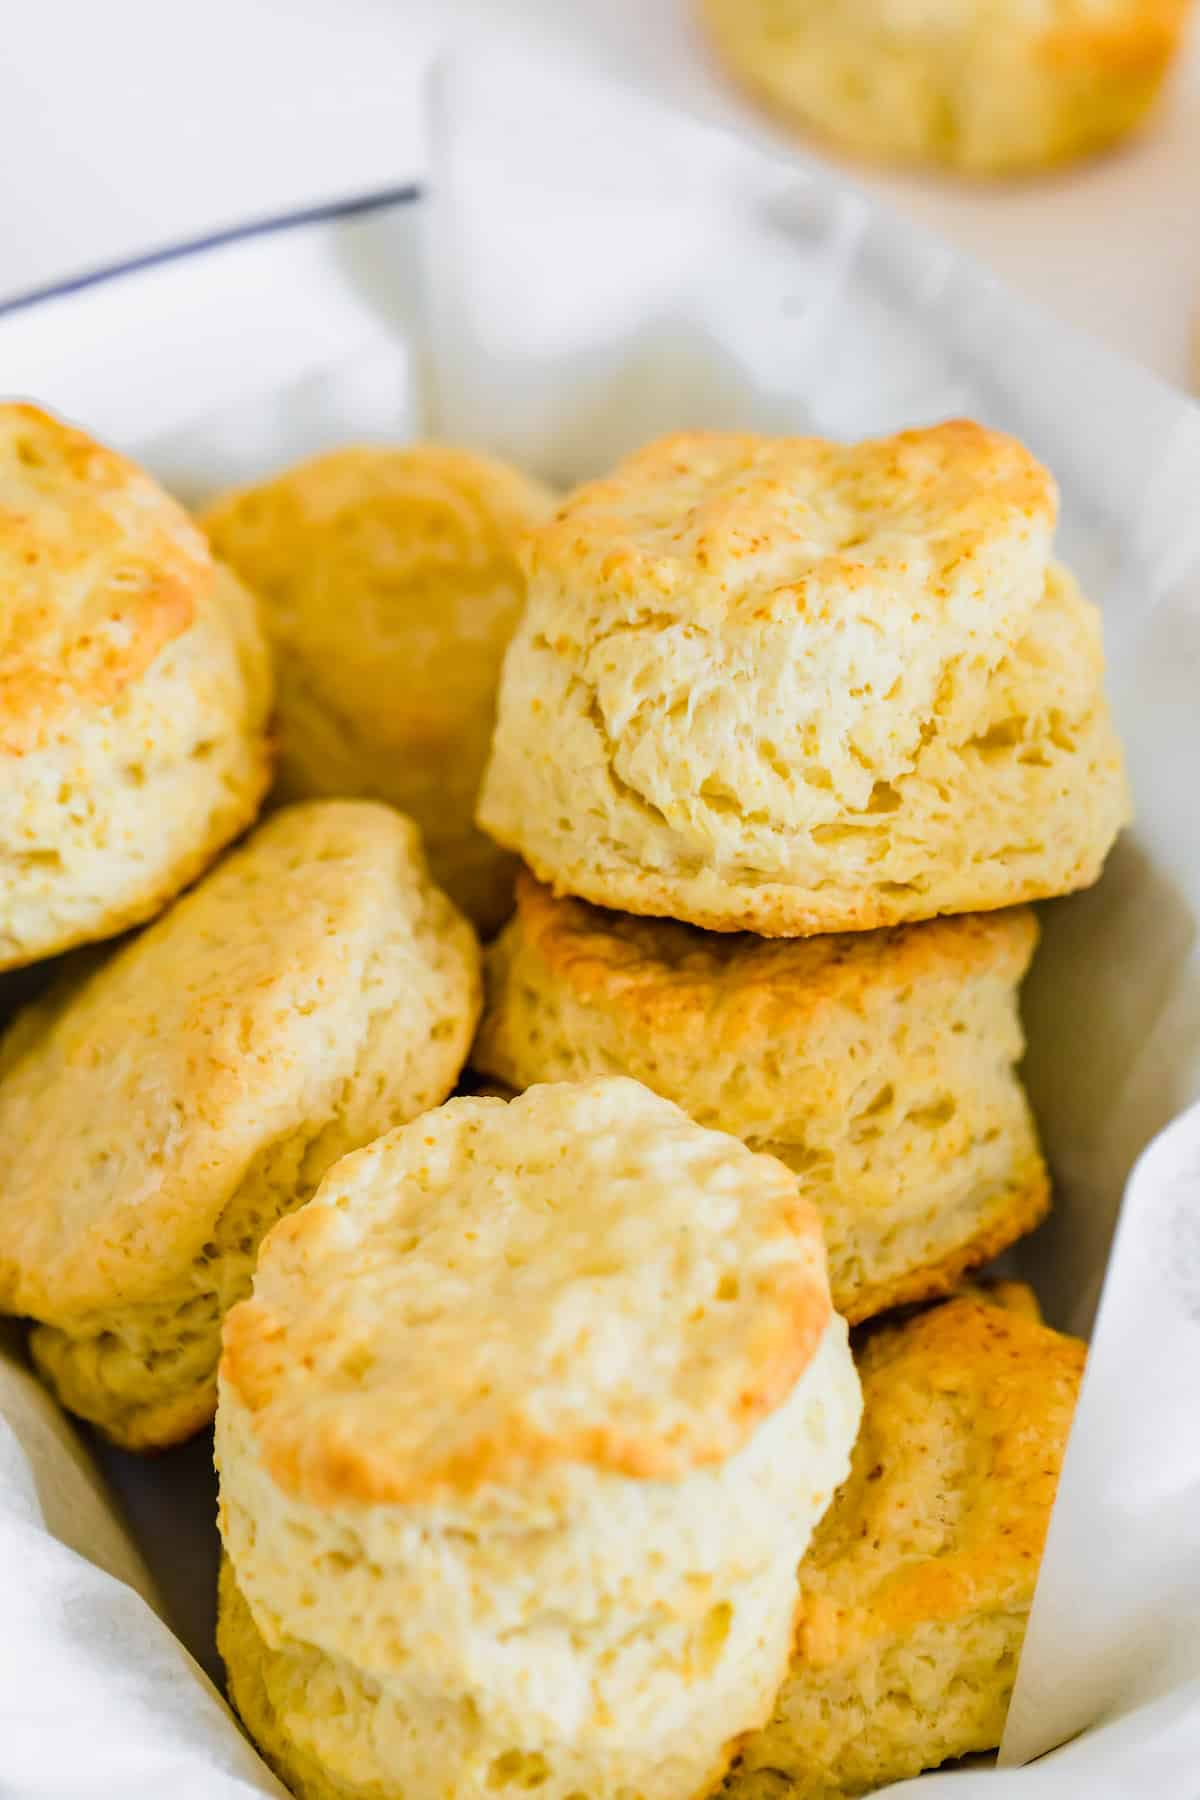 A Close-Up Shot of Homemade Sweet Biscuits in a Bowl